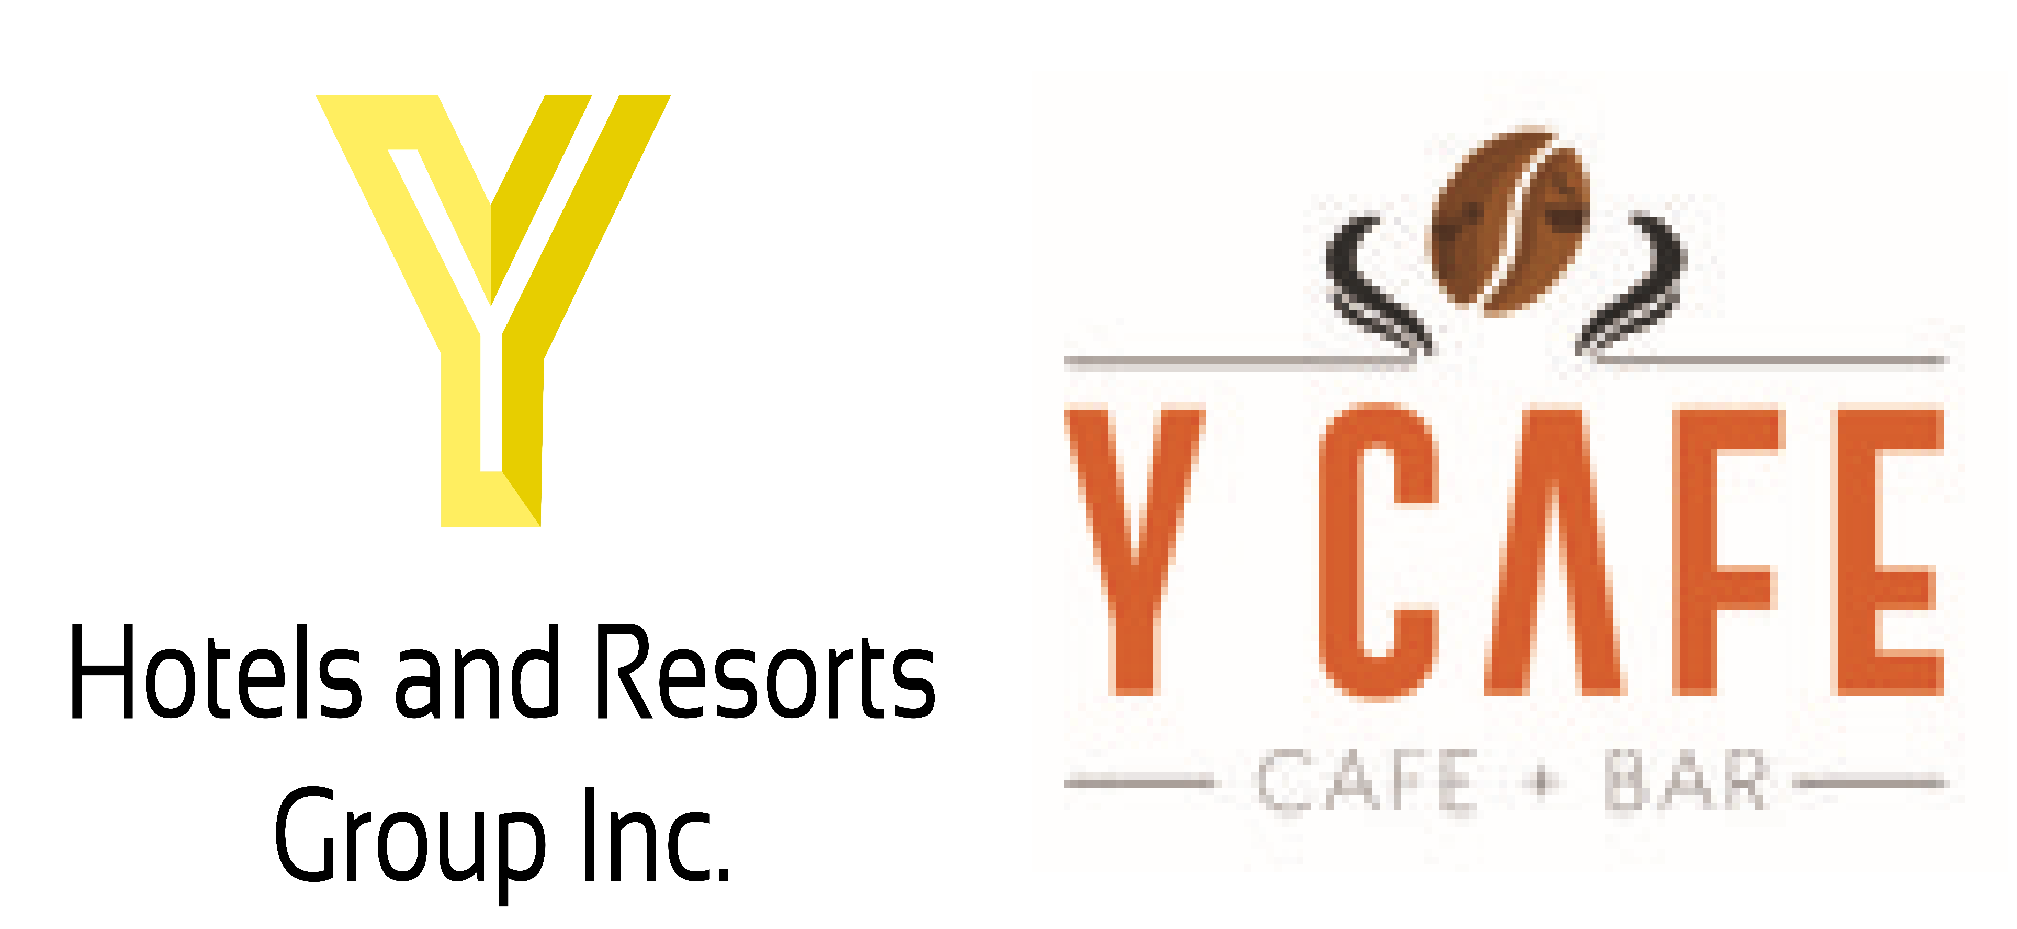 Accountant from Y Hotel and Resorts Group Inc